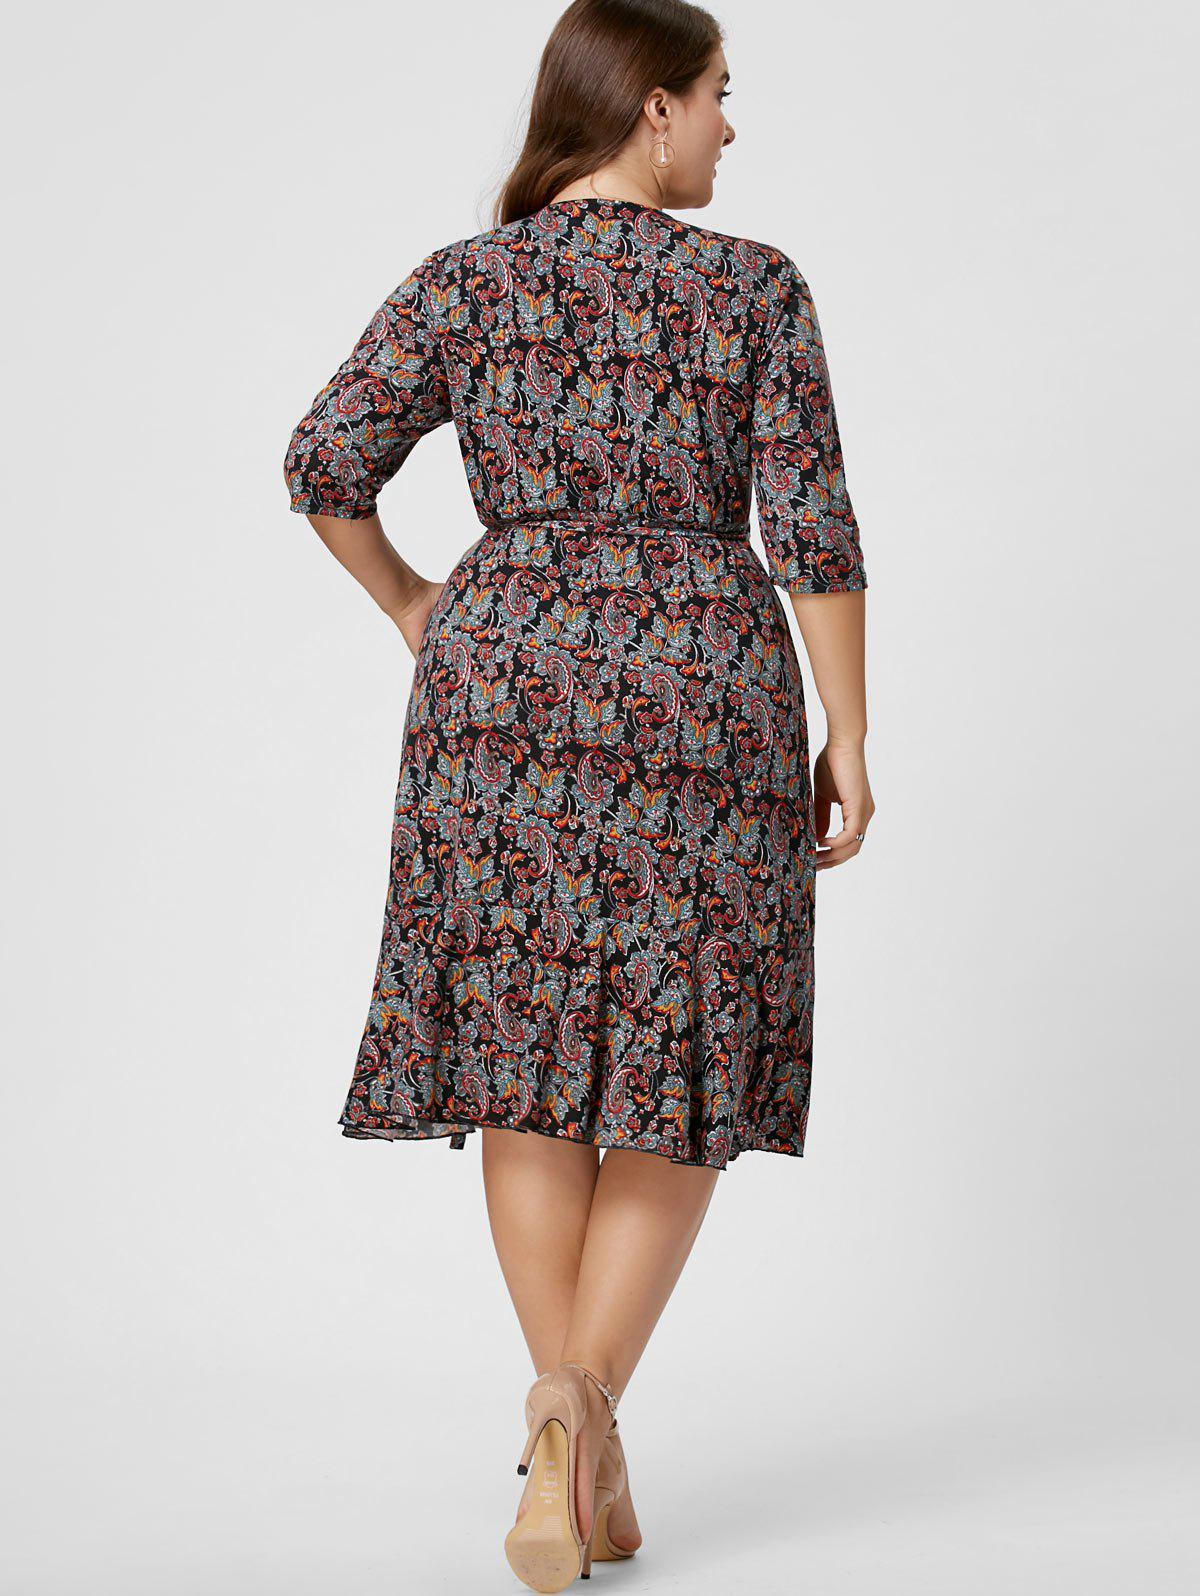 Plus Size Overlap Paisley Dress - COLORMIX XL